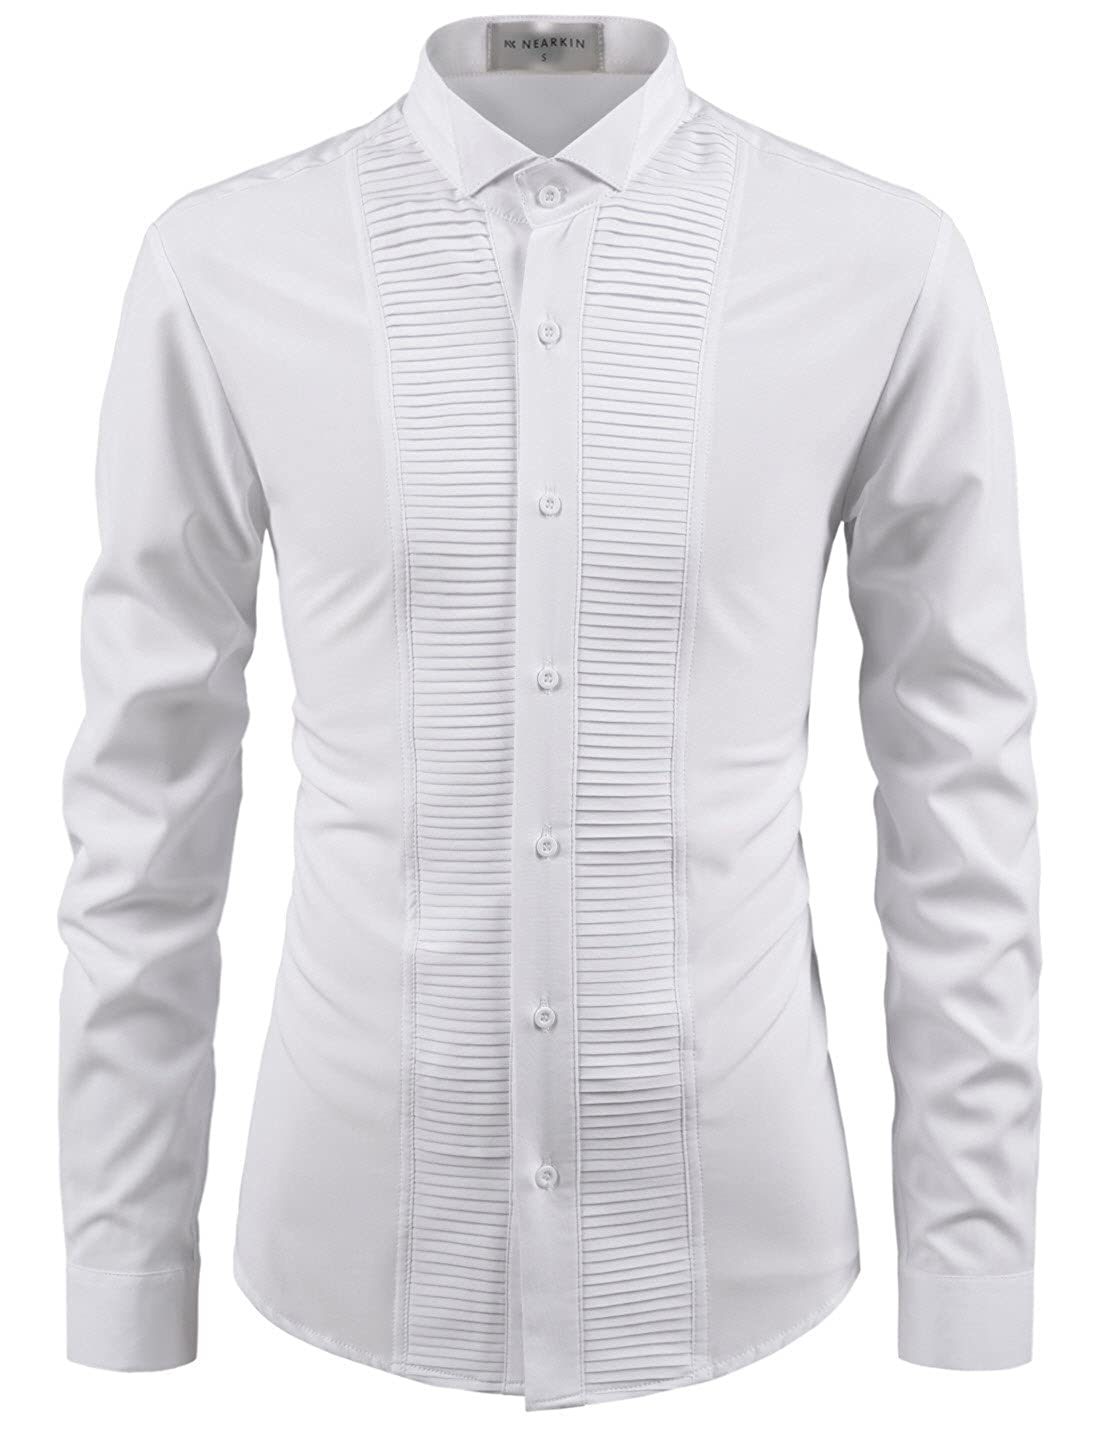 NEARKIN Adorable Mens Wrinkle Free Stretchy Fitted Dress Shirts